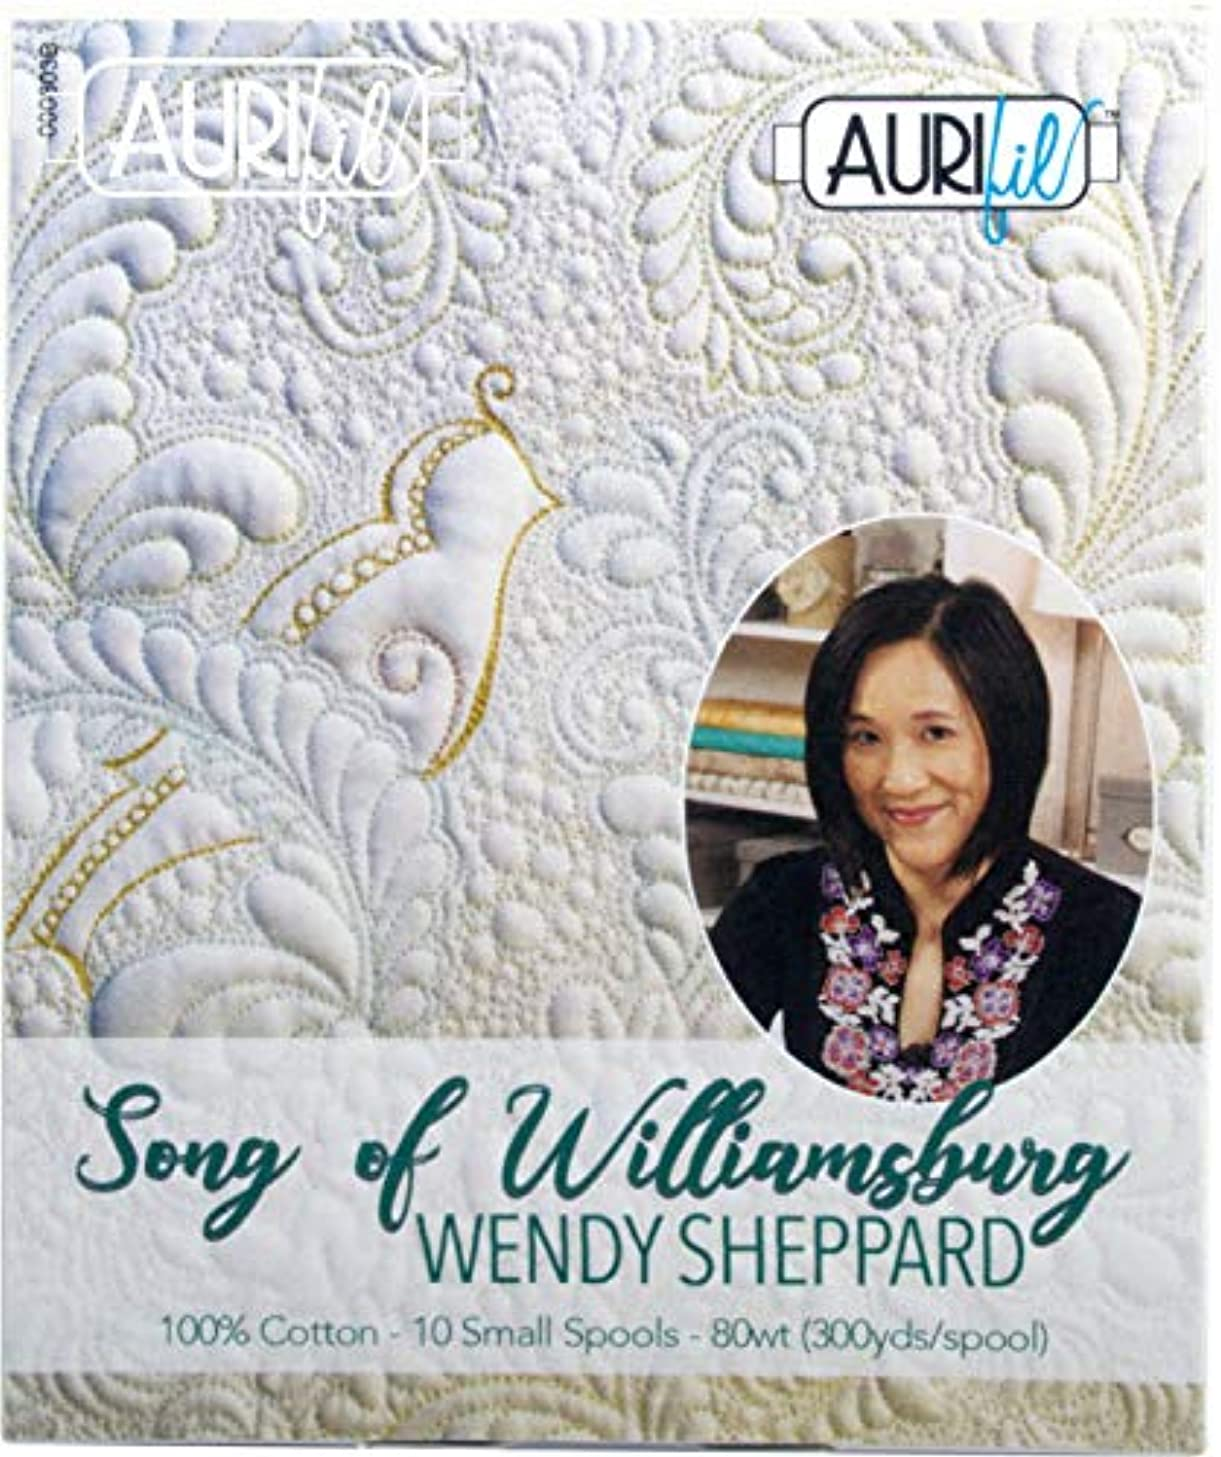 Wendy Sheppard Song of Williamsburg Aurifil Thread Kit 10 Small Spools 80 Weight WS80SW10